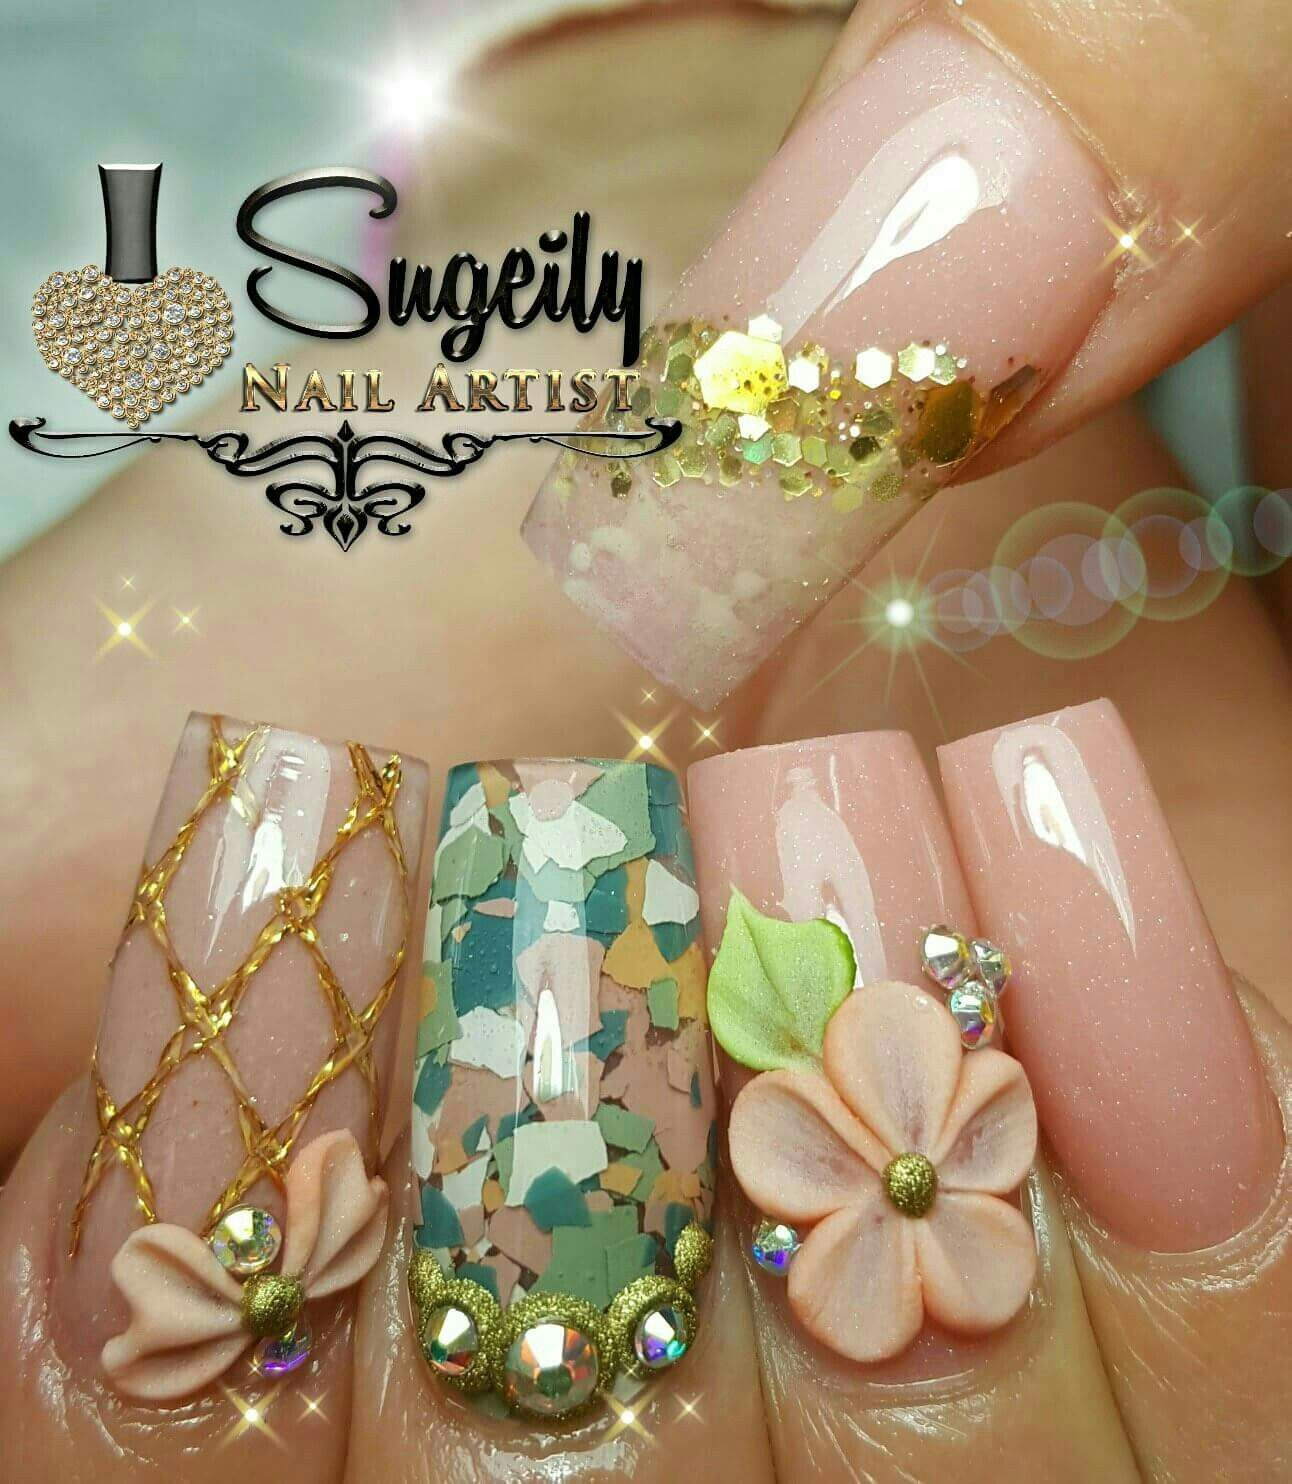 Confetti So Liking This Nail Art With Confetti And 3d Flowers